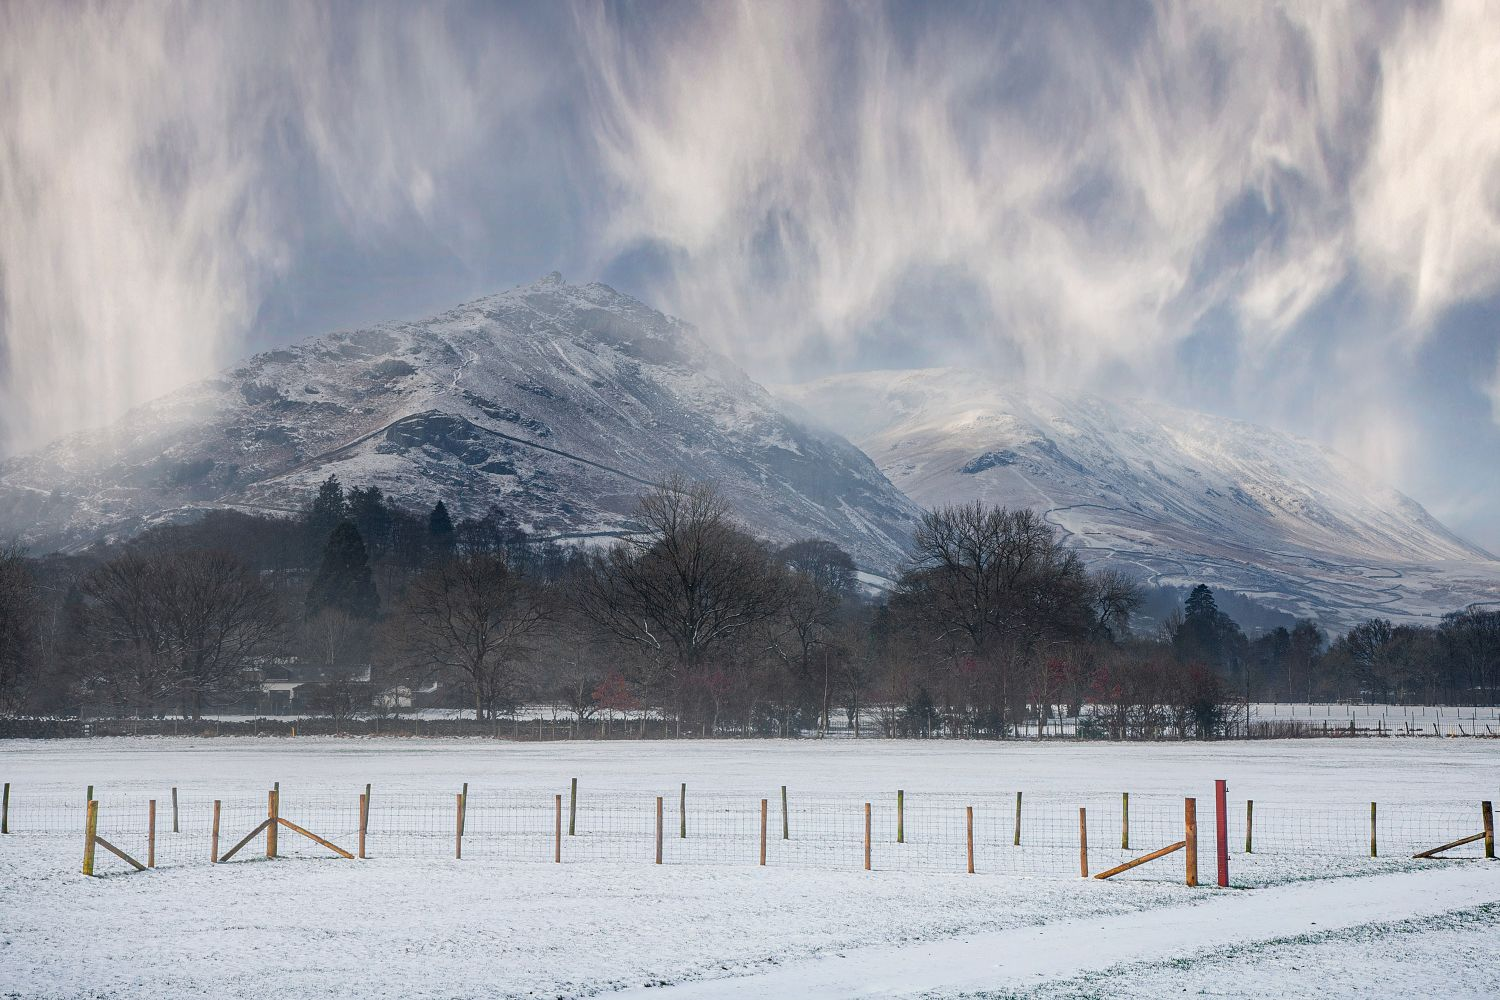 Snow showers over Helm Crag by Martin Lawrence